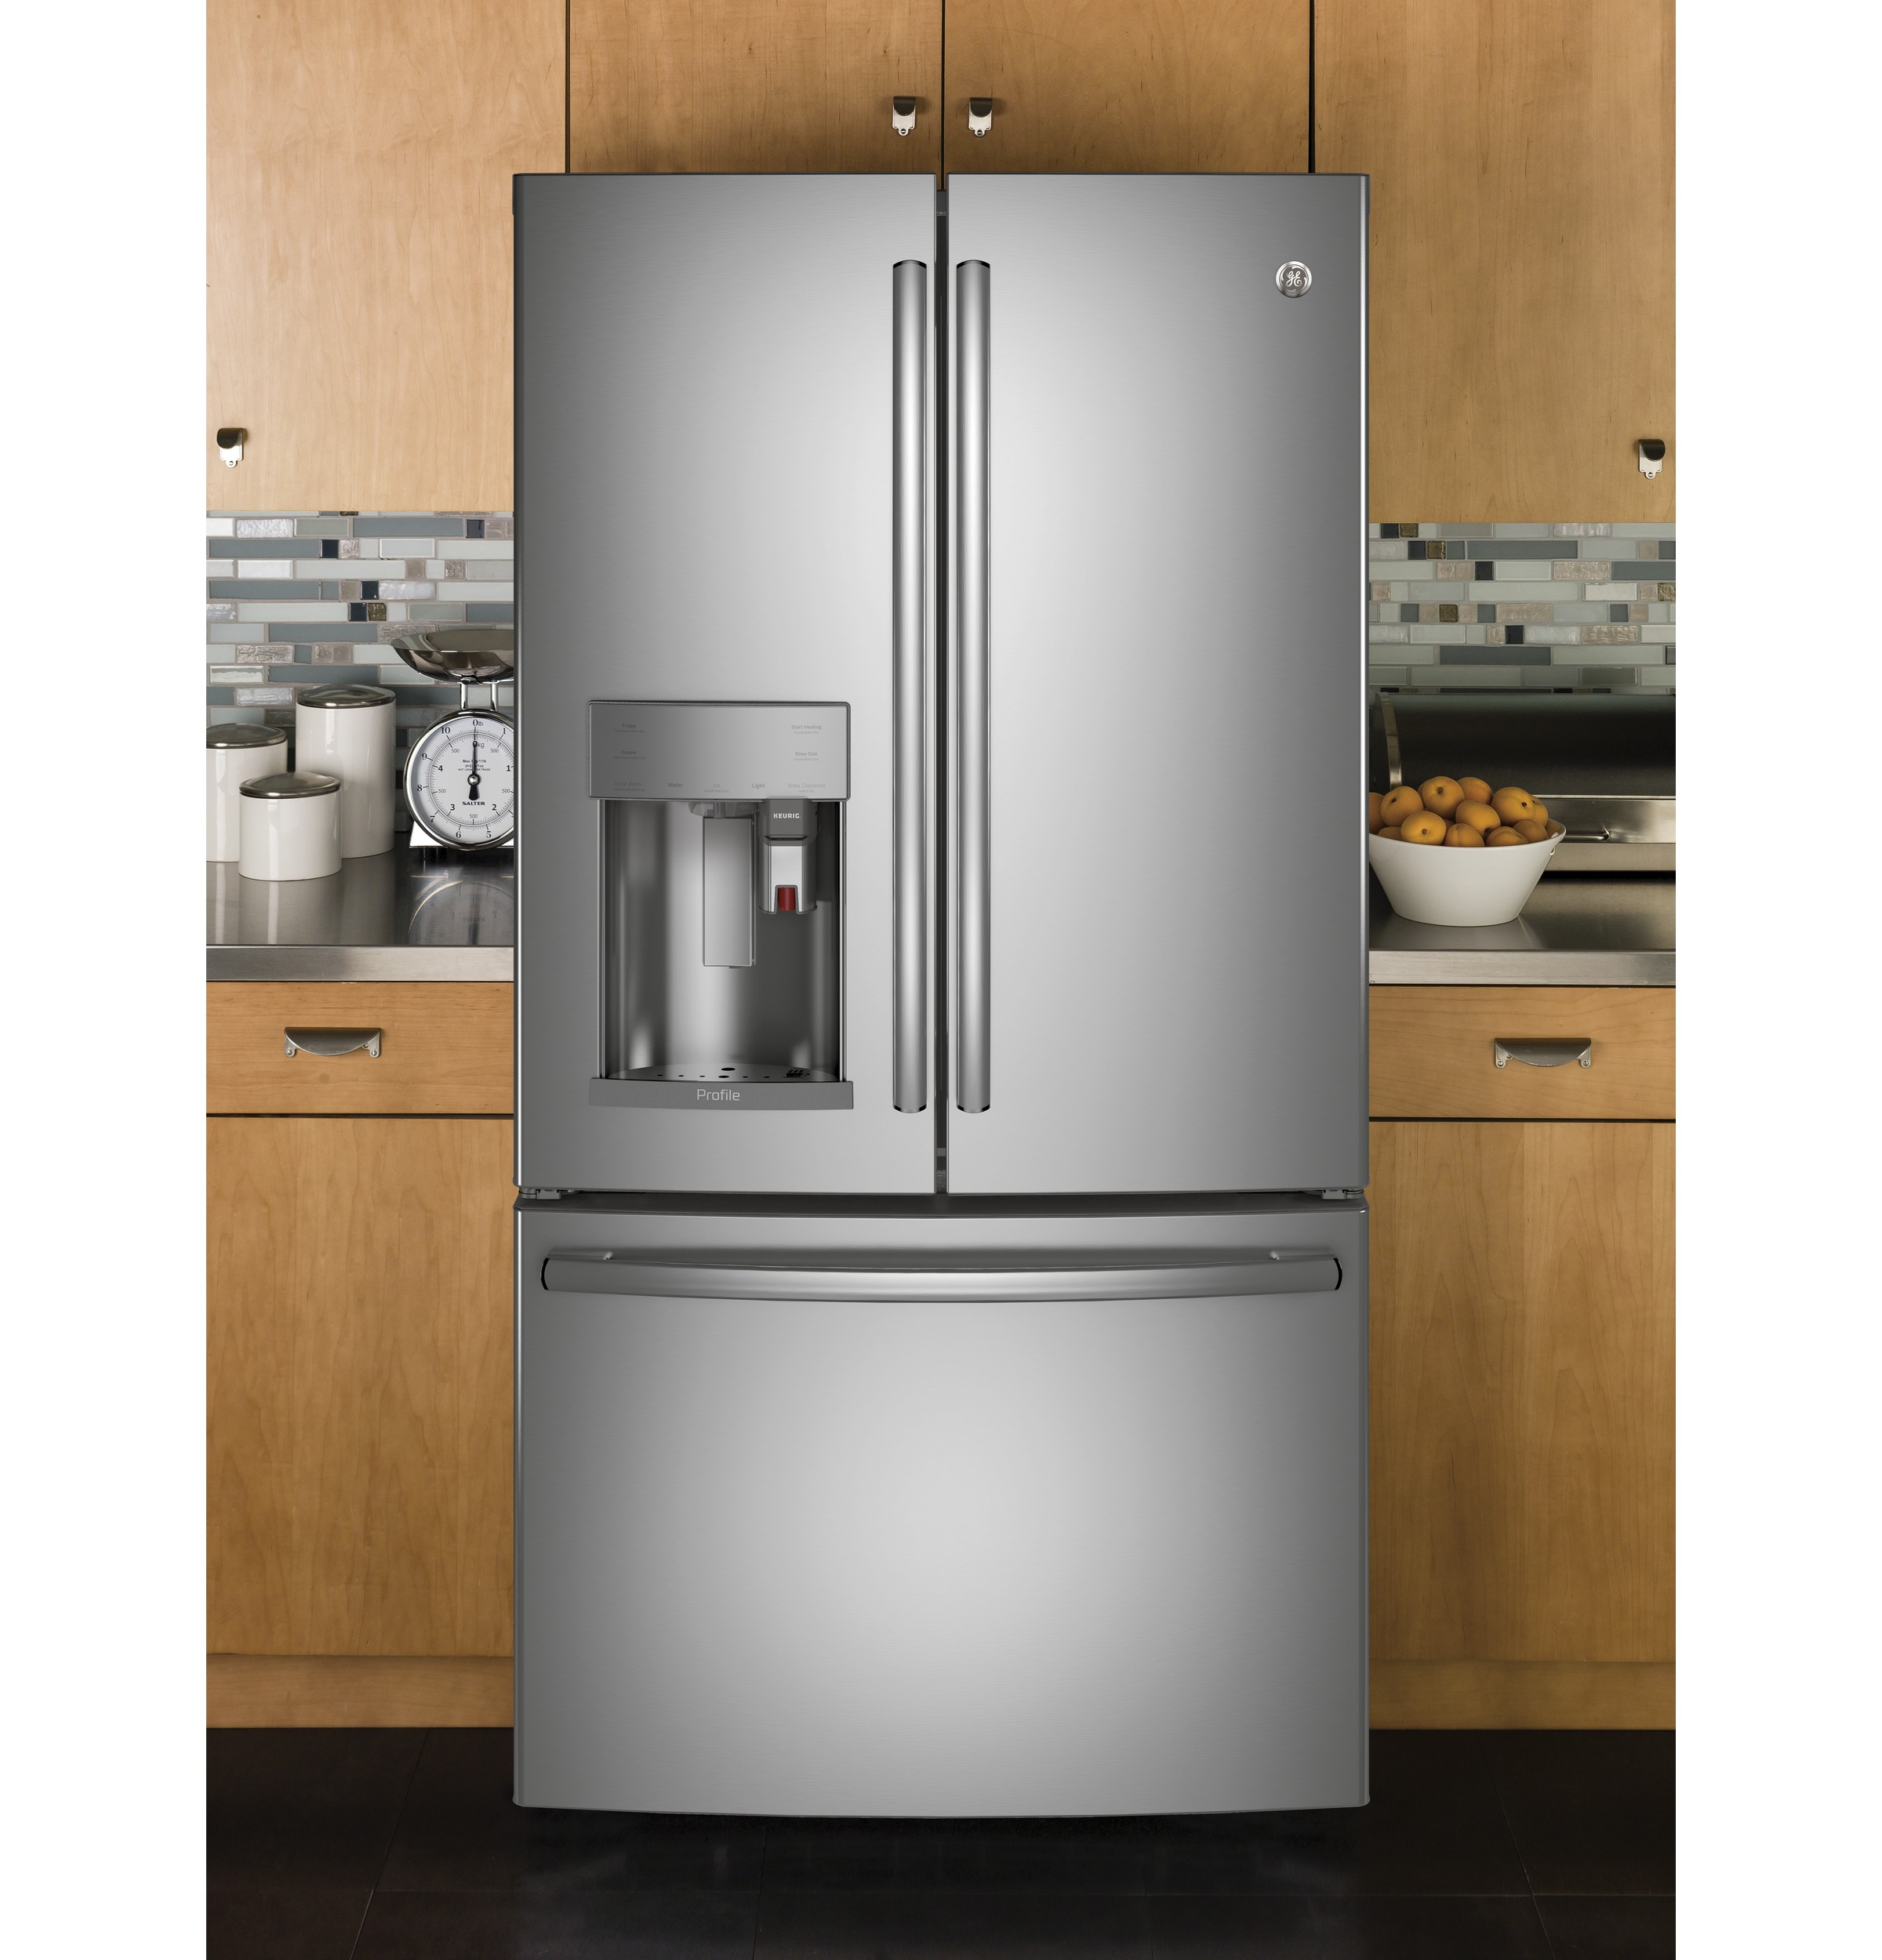 Model: PYE22PSKSS | GE Profile™ Series ENERGY STAR® 22.2 Cu. Ft. Counter-Depth French-Door Refrigerator with Keurig® K-Cup® Brewing System